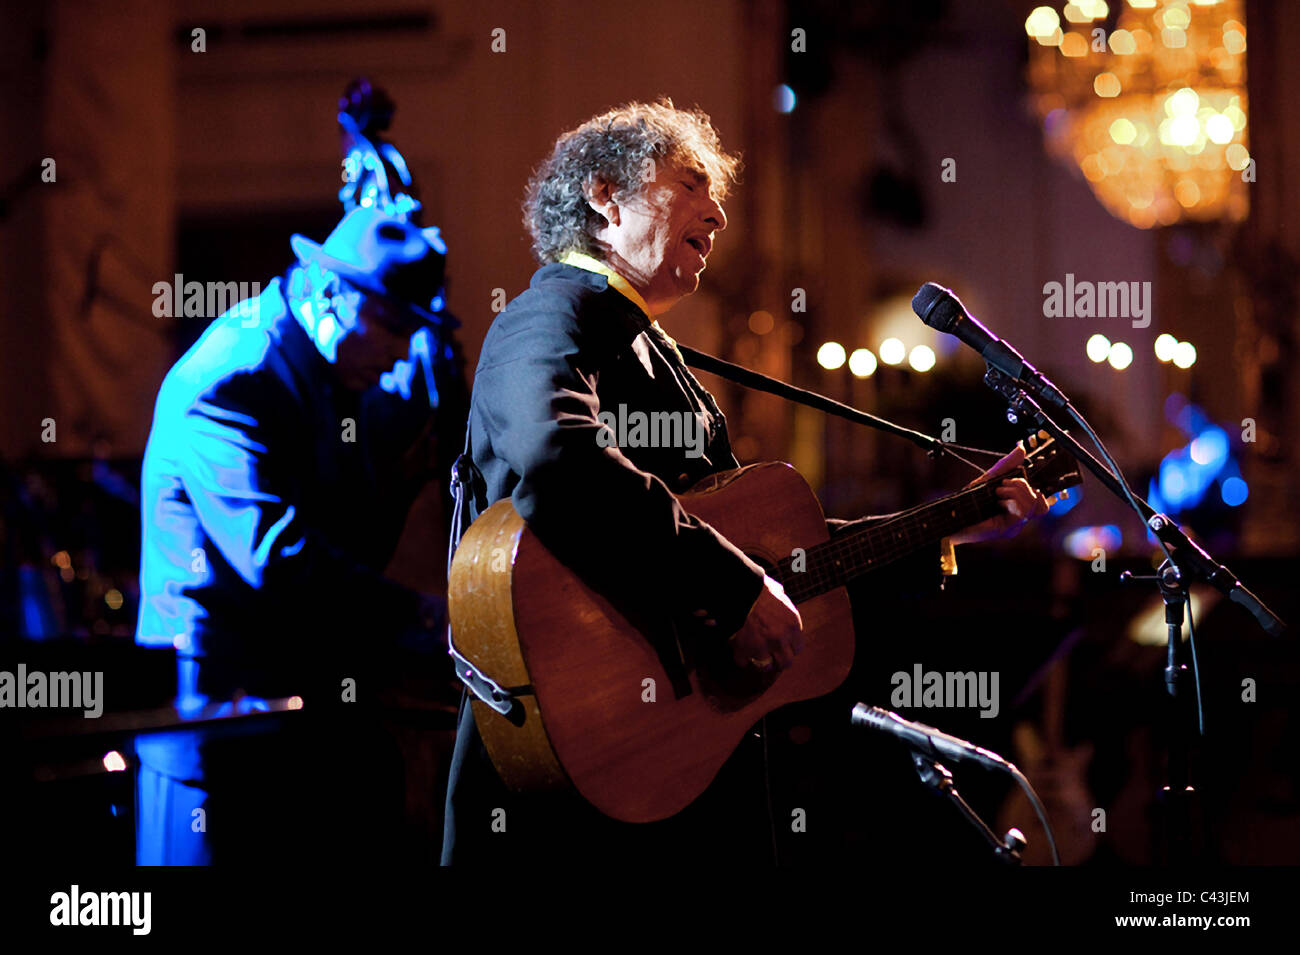 Singer Bob Dylan performs at the White House - Stock Image